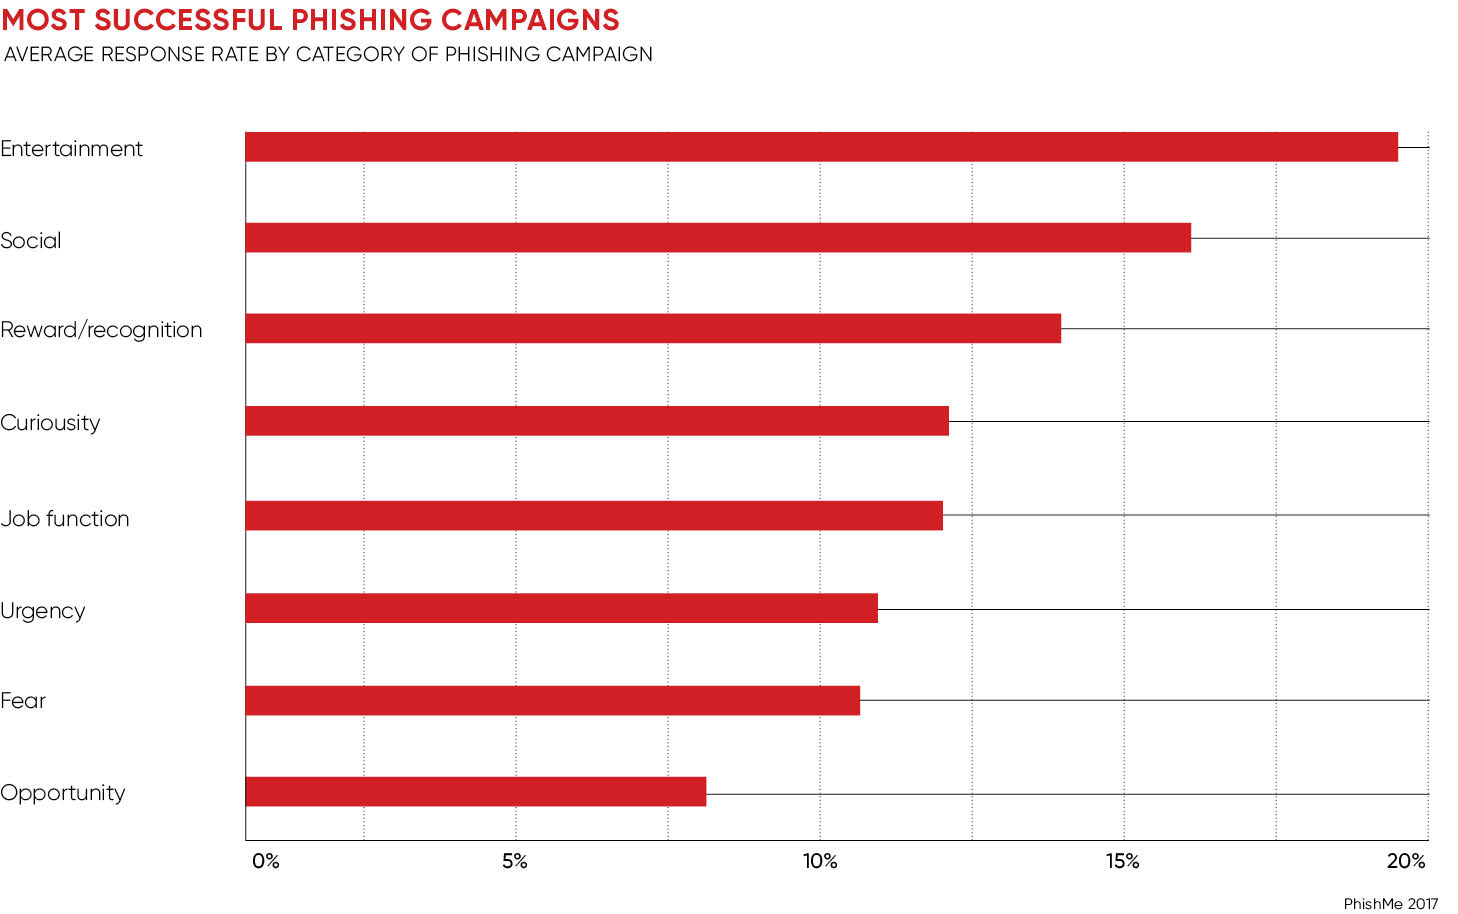 Most successful phishing campaigns chart